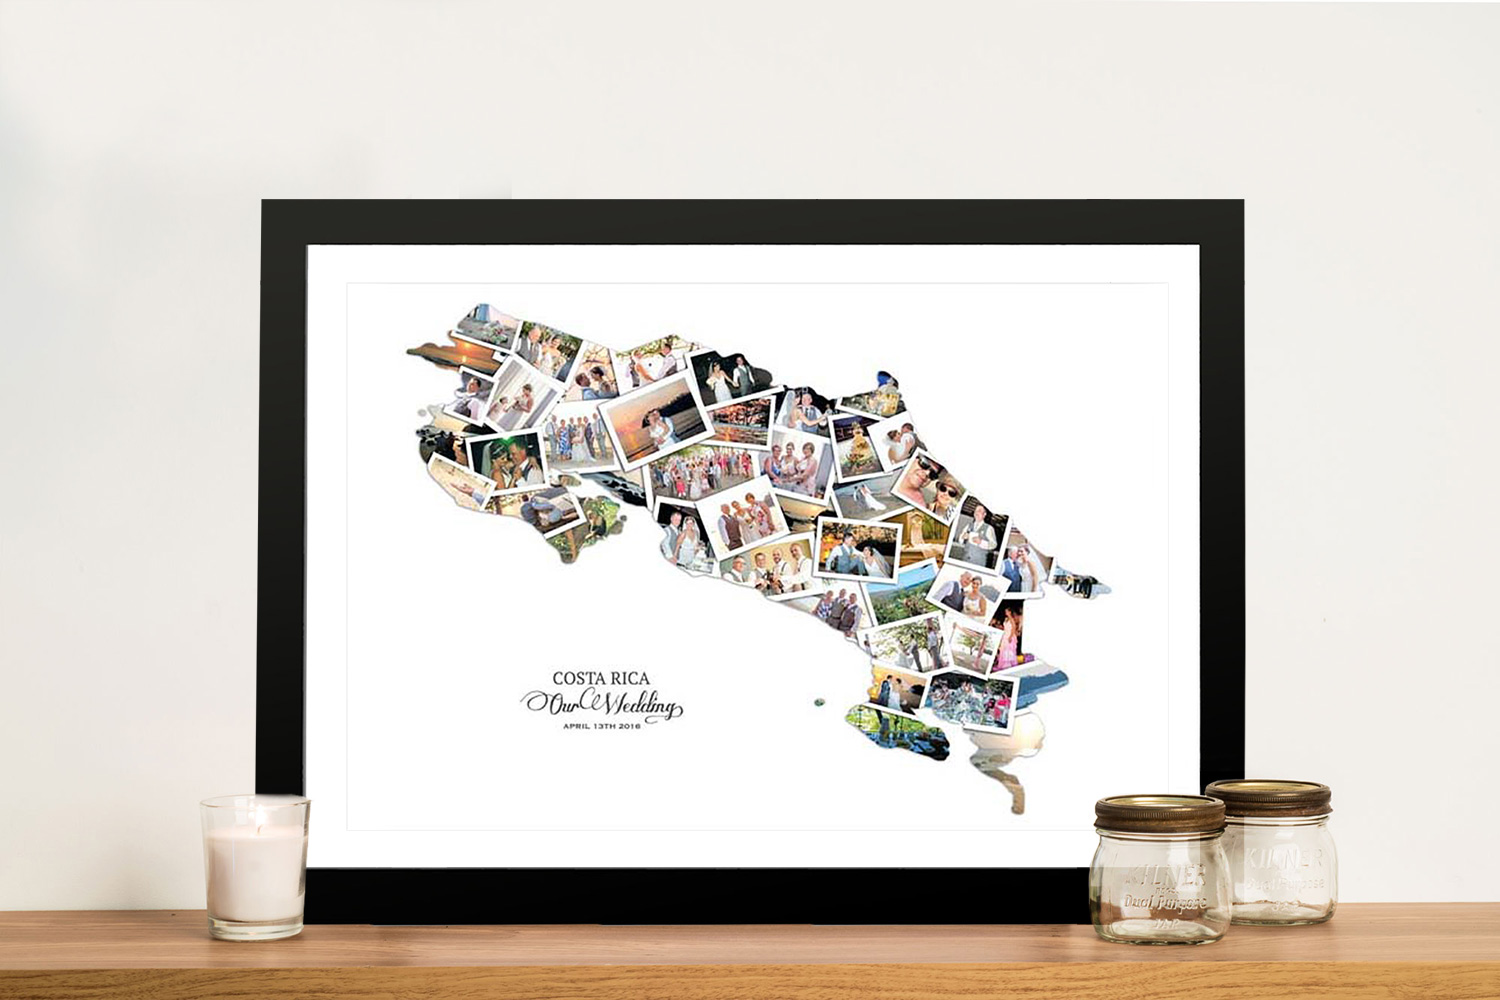 Buy a Costa Rica Framed Photo Map Collage | Costa Rica Map Collage